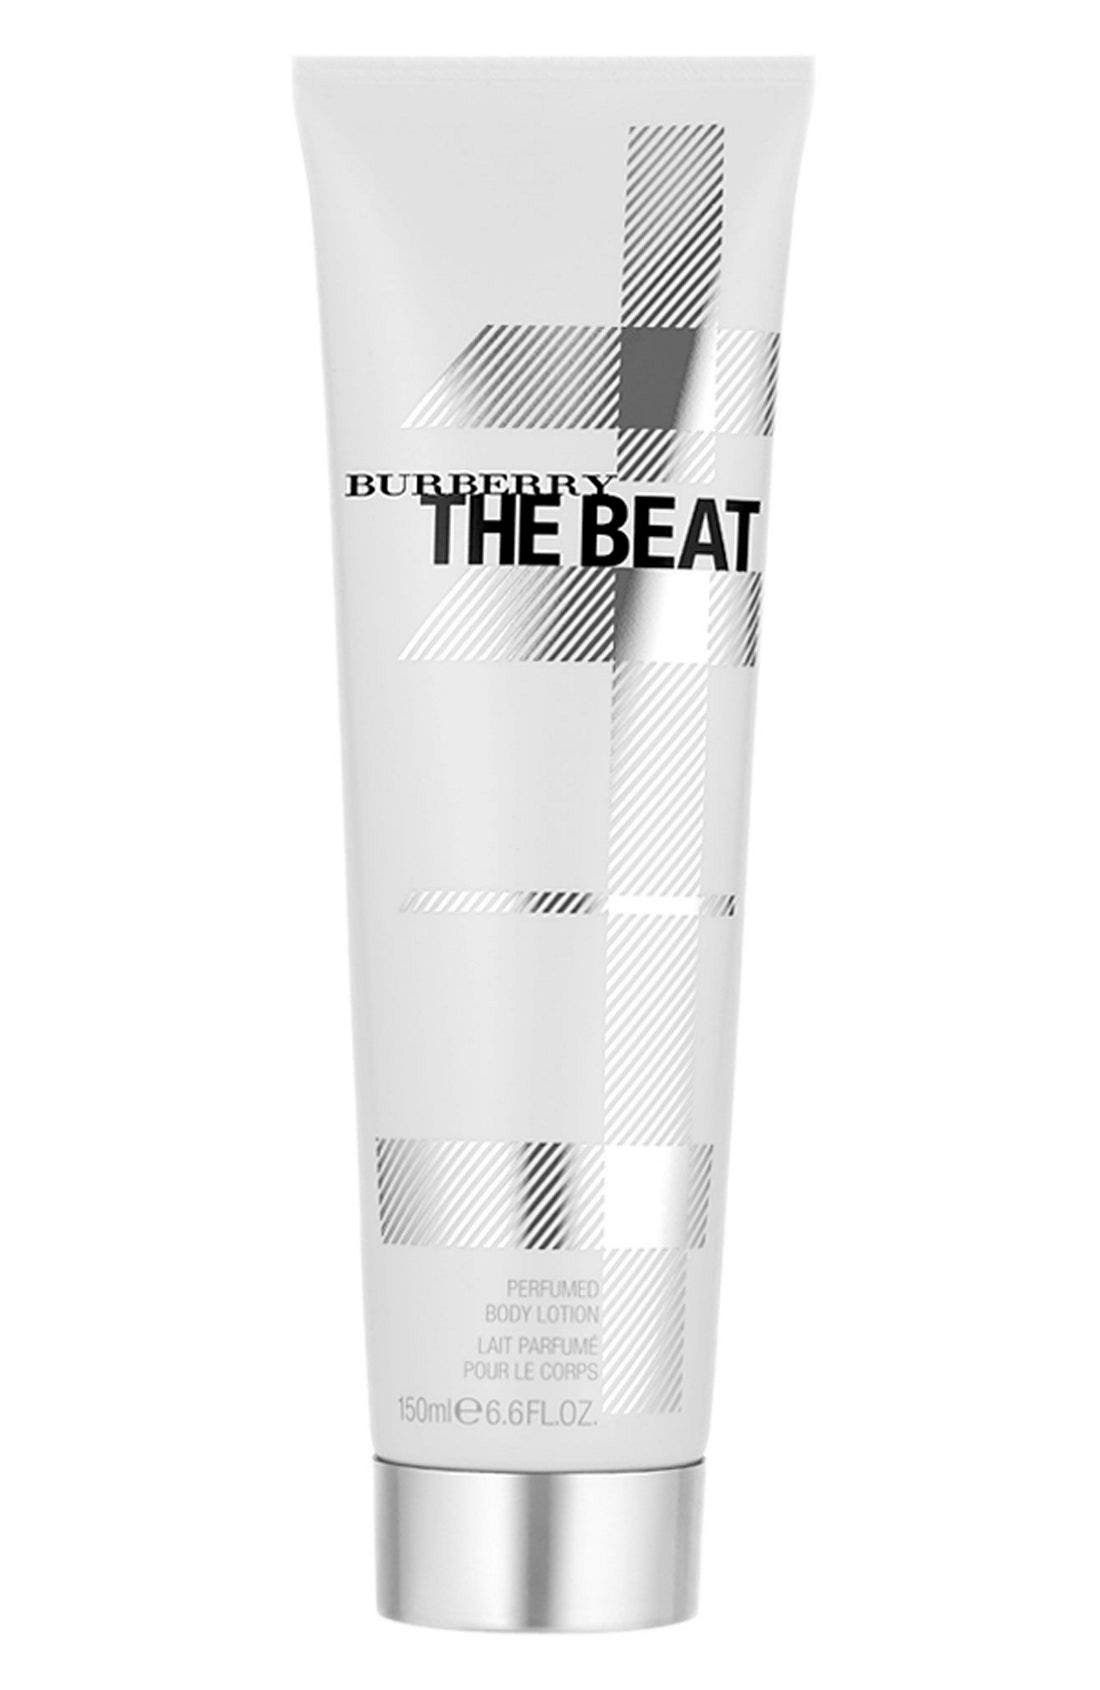 'The Beat' Body Lotion,                             Main thumbnail 1, color,                             000